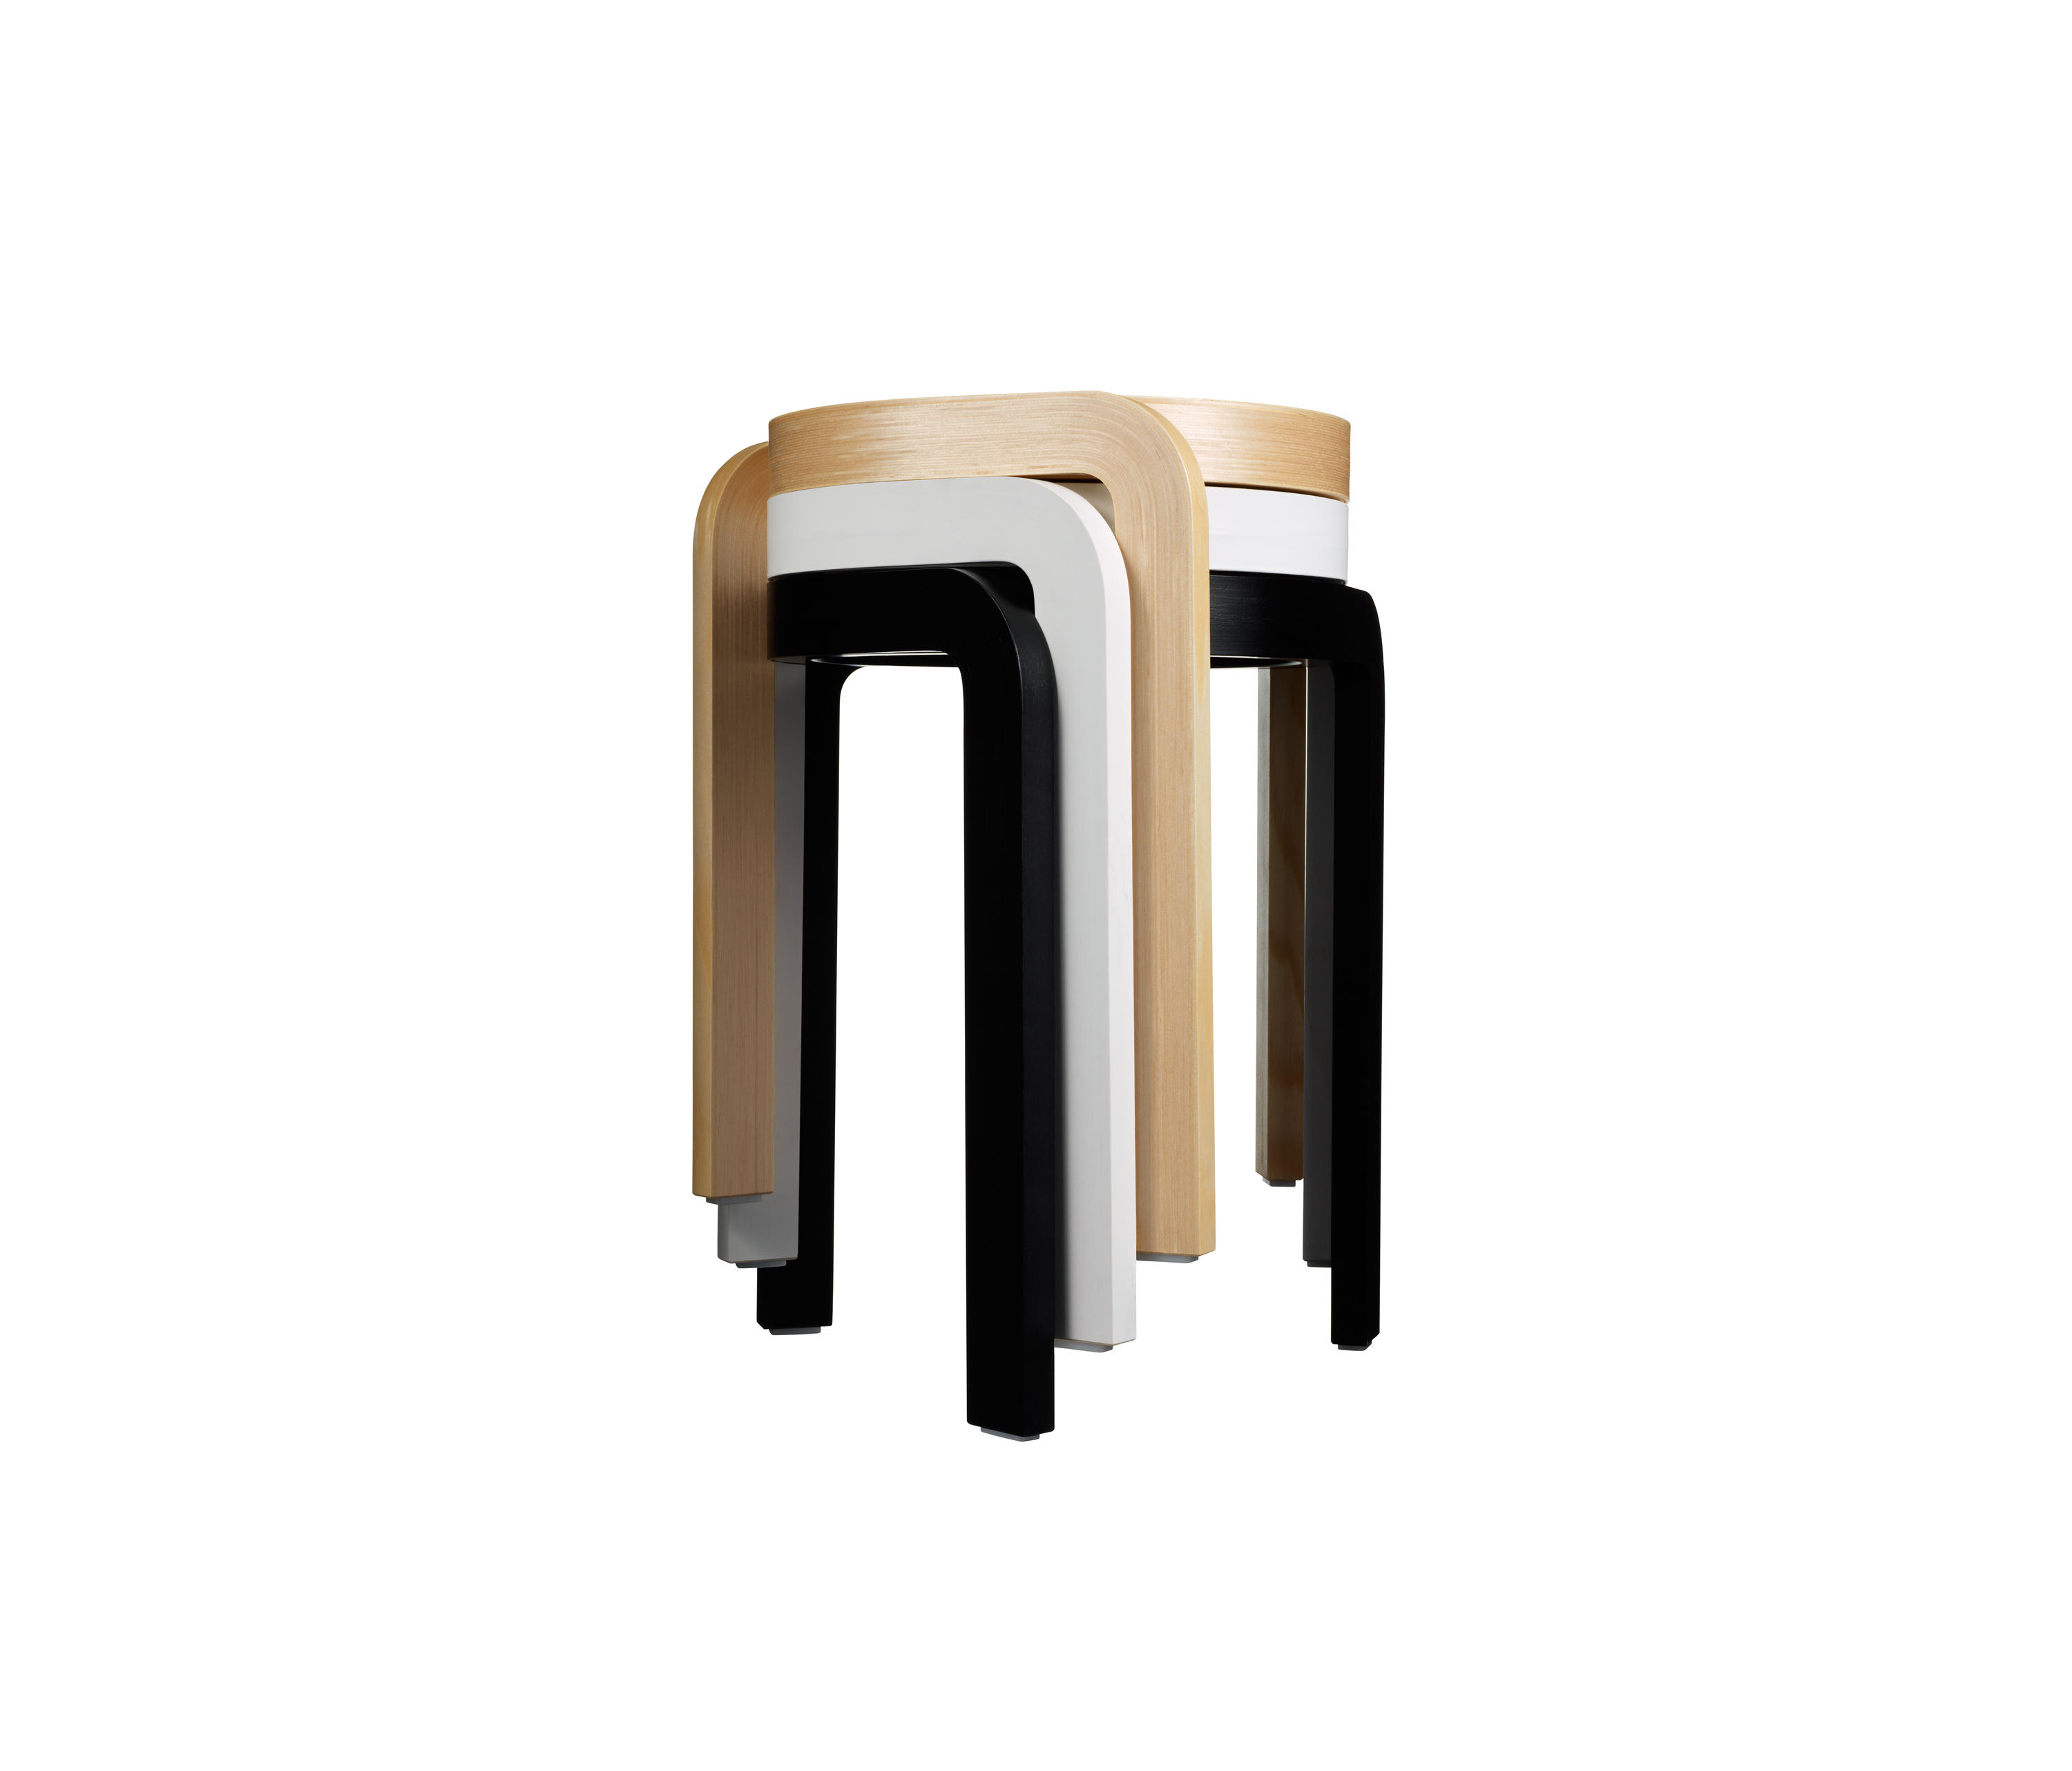 spin stackable stool stools from swedese architonic. Black Bedroom Furniture Sets. Home Design Ideas